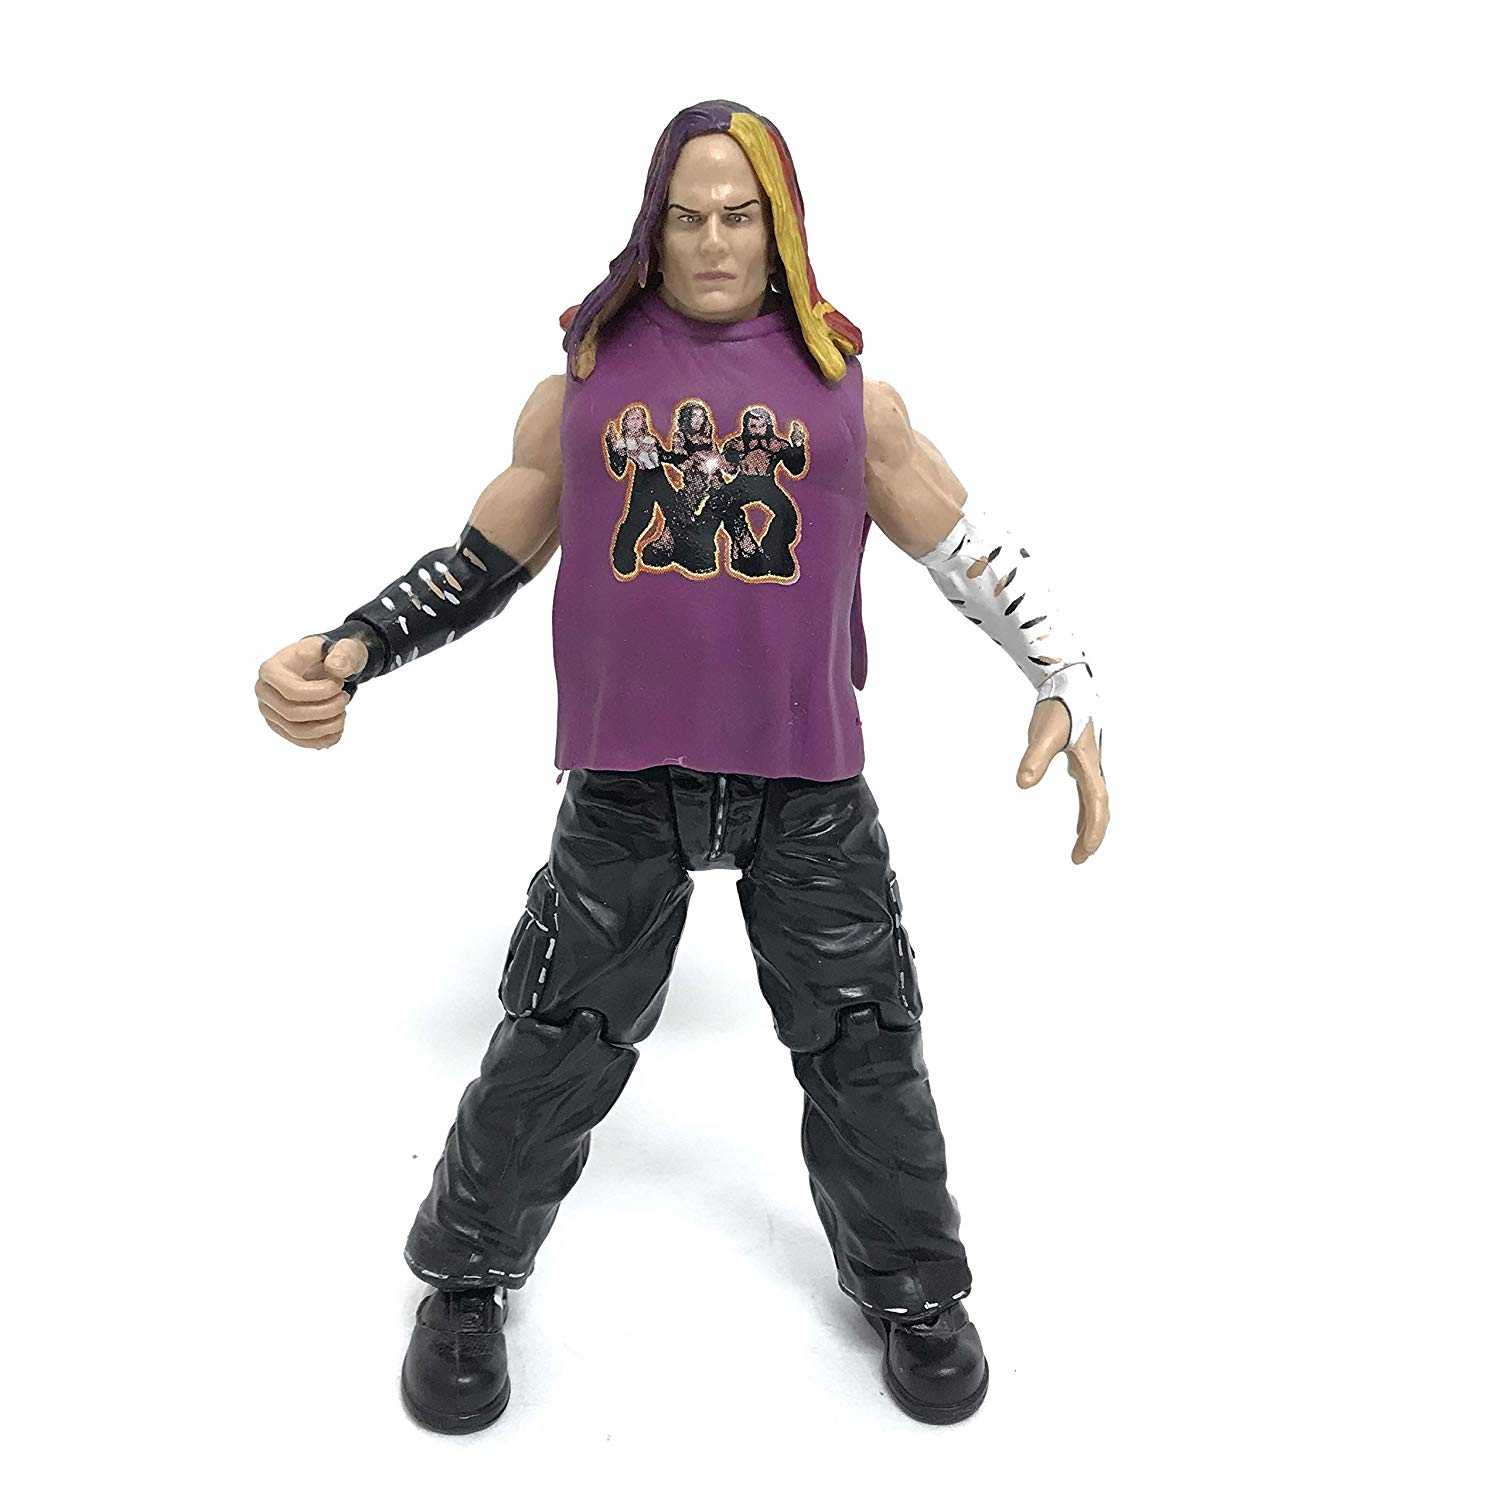 WWE Loose Wrestling Action Figure Jeff Hardy Wrestler